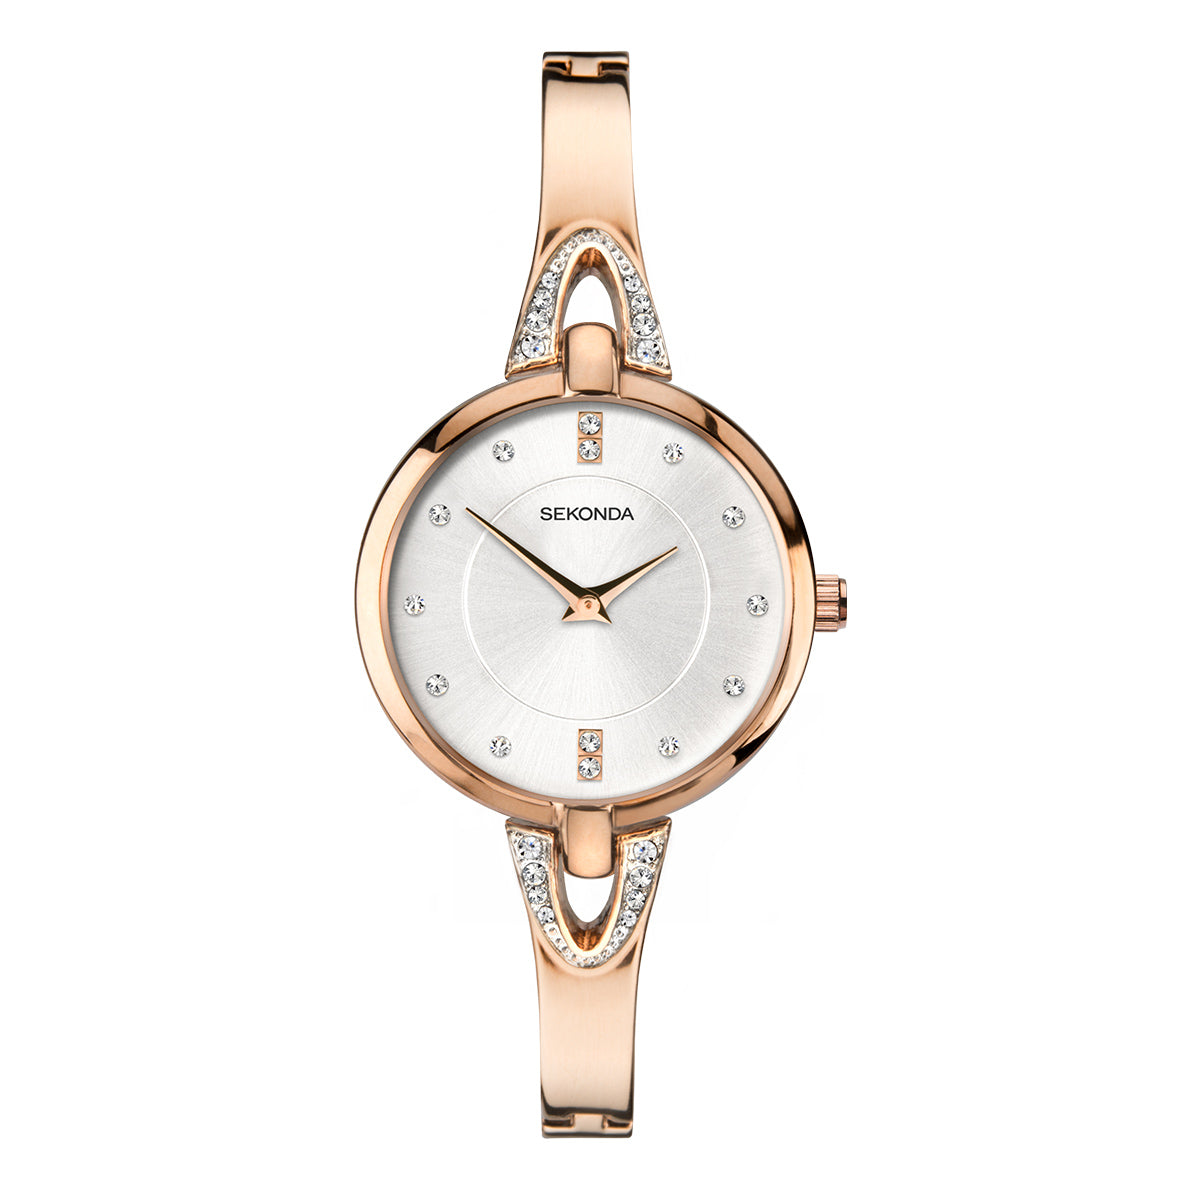 b0cac5b37df Sekonda Women s Rose Gold Plated Dress Watch